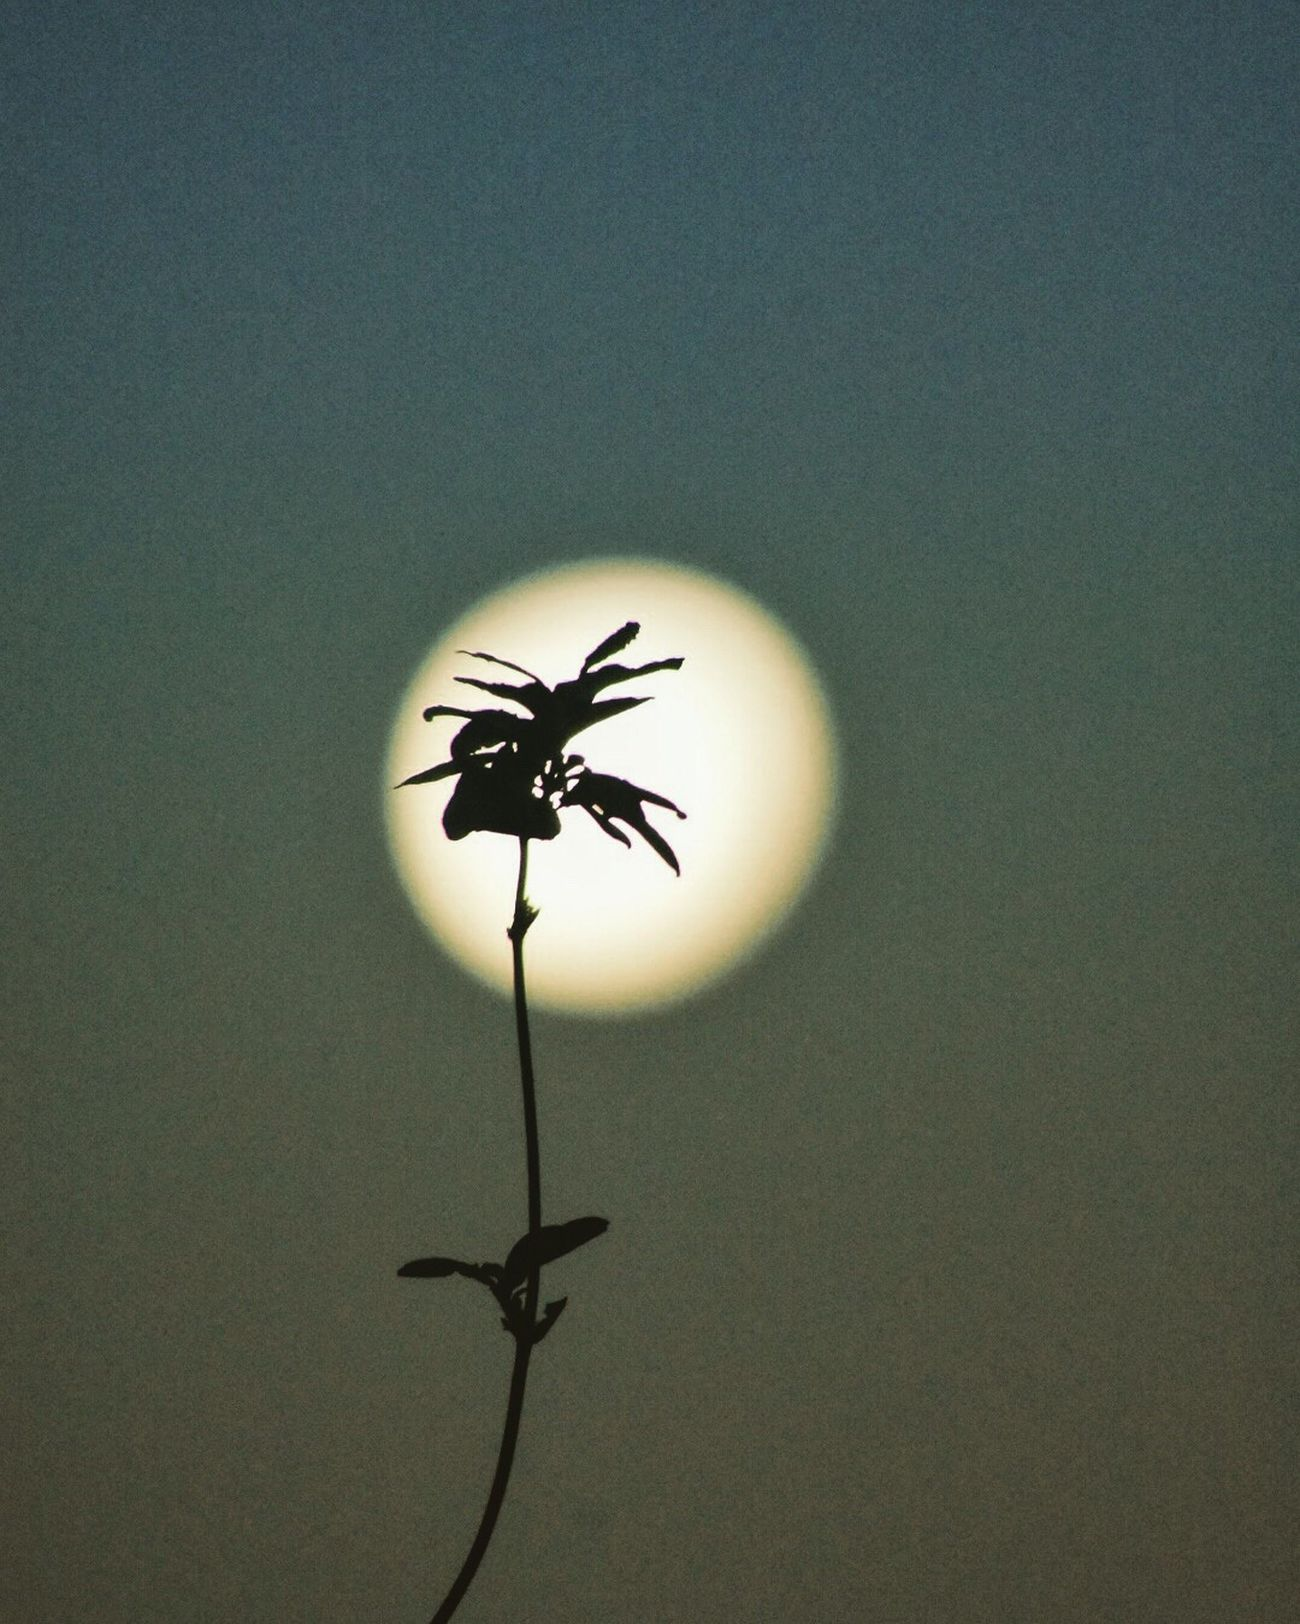 Moon Silhouette Plant Focus On Foreground Stem Insect Close-up Growth Fragility Nature Beauty In Nature New Life Sky No People Tranquility Botany Flower Head Freshness Single Flower Uncultivated Nikonphotography